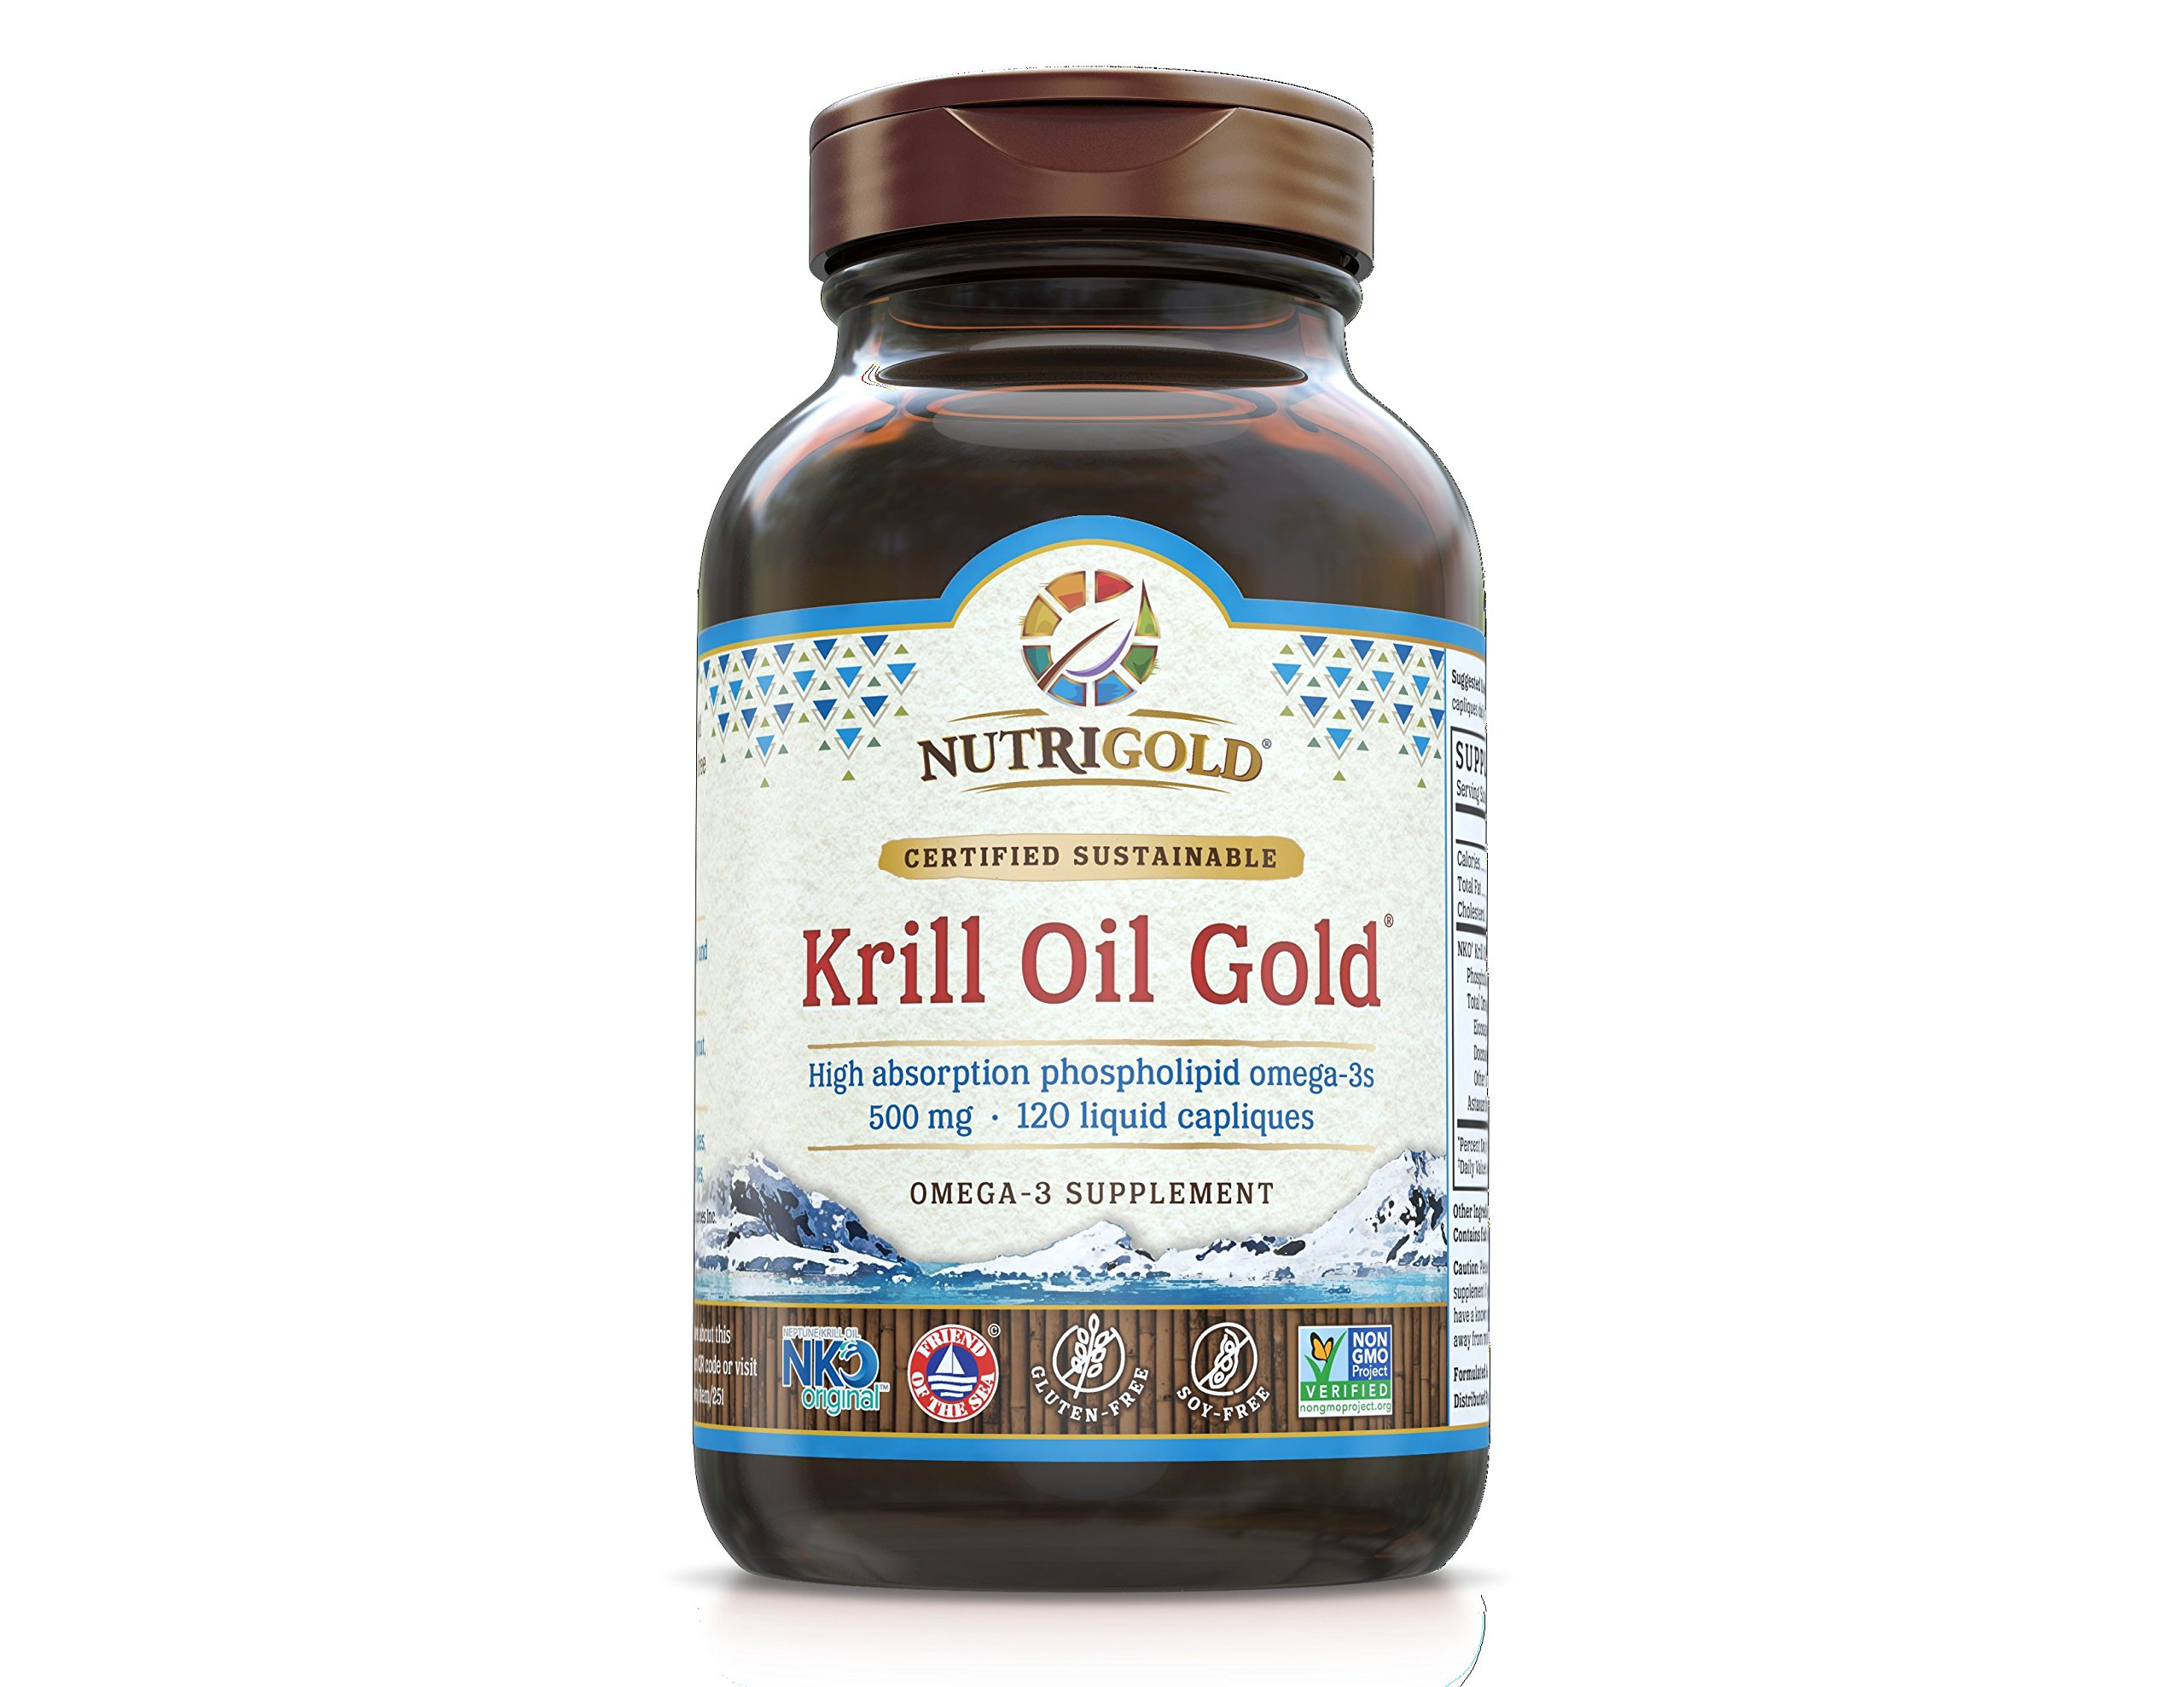 NutriGold Krill Oil Gold, 500 mg, 120 Liquid Capliques